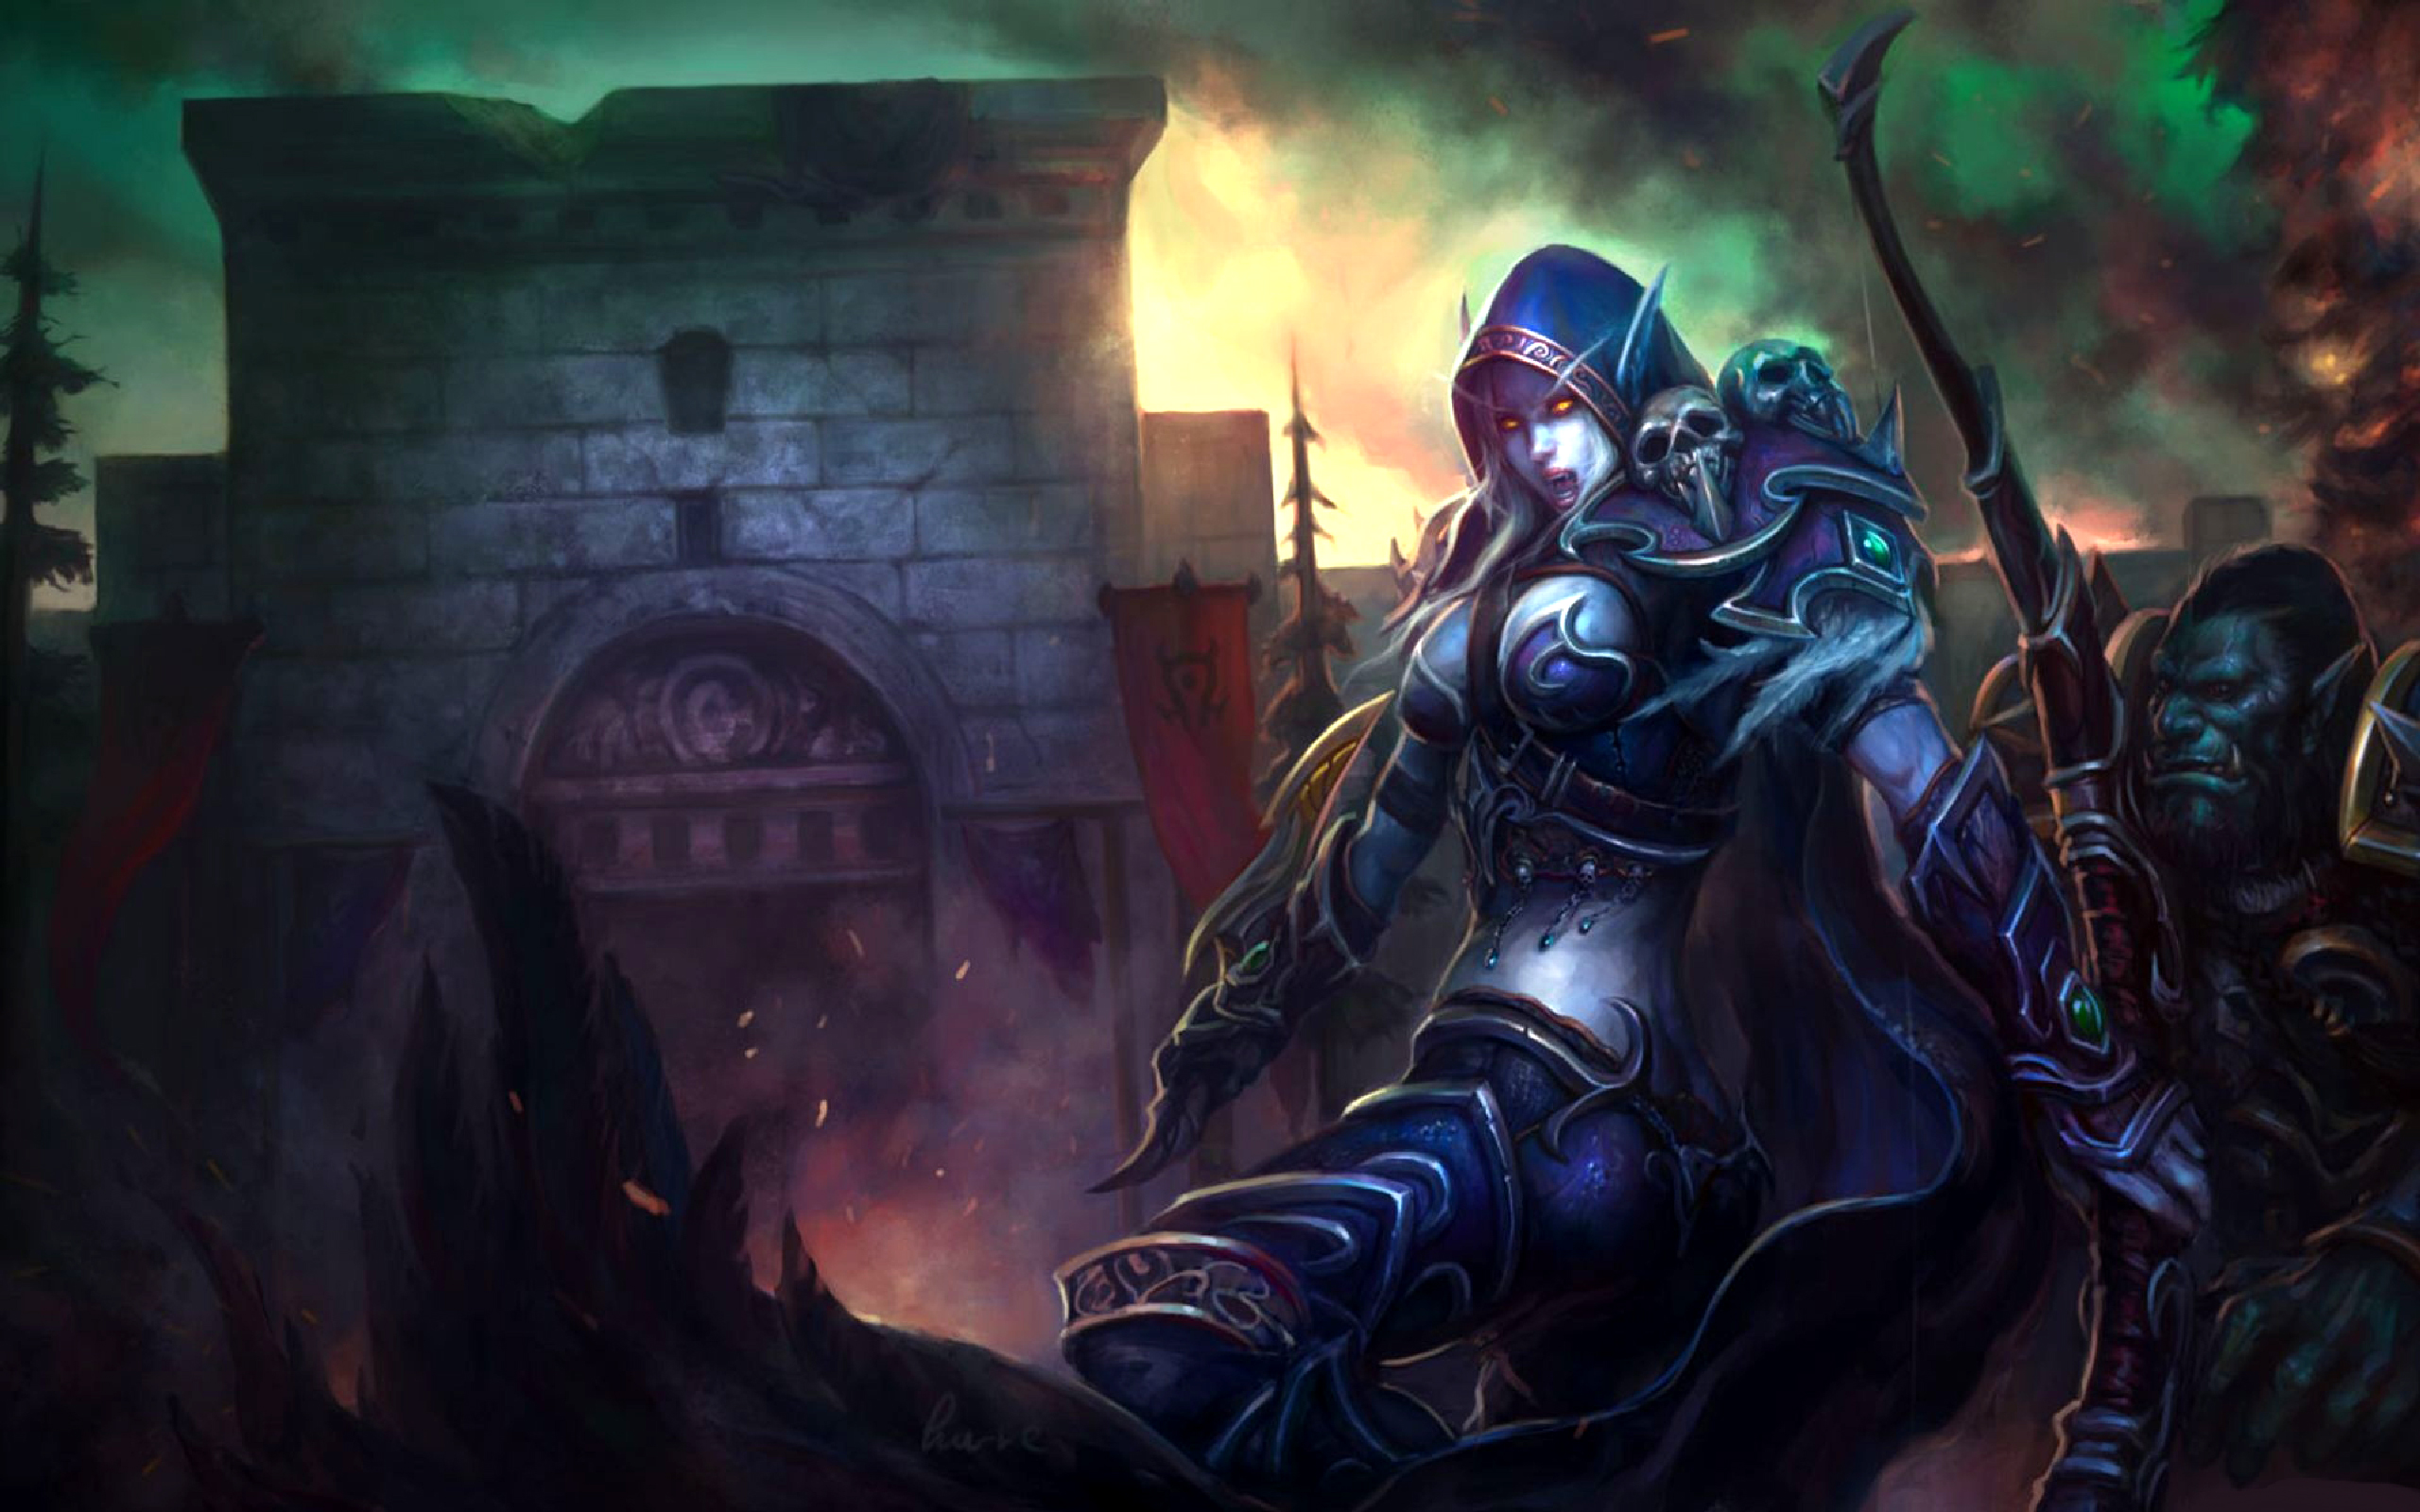 World Of Warcraft Night Elf Wallpaper Posted By Sarah Peltier